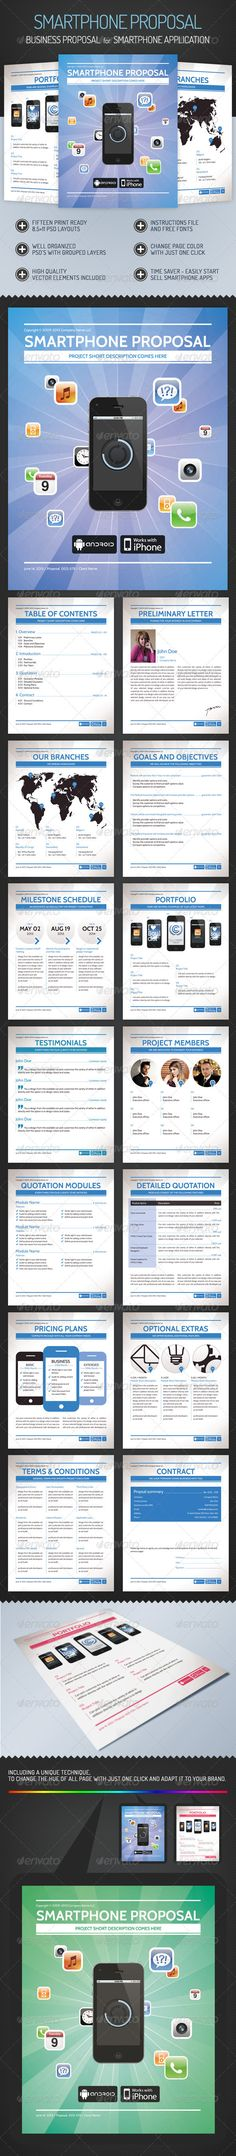 Proposal | Proposals, Proposal Templates And Business Proposal